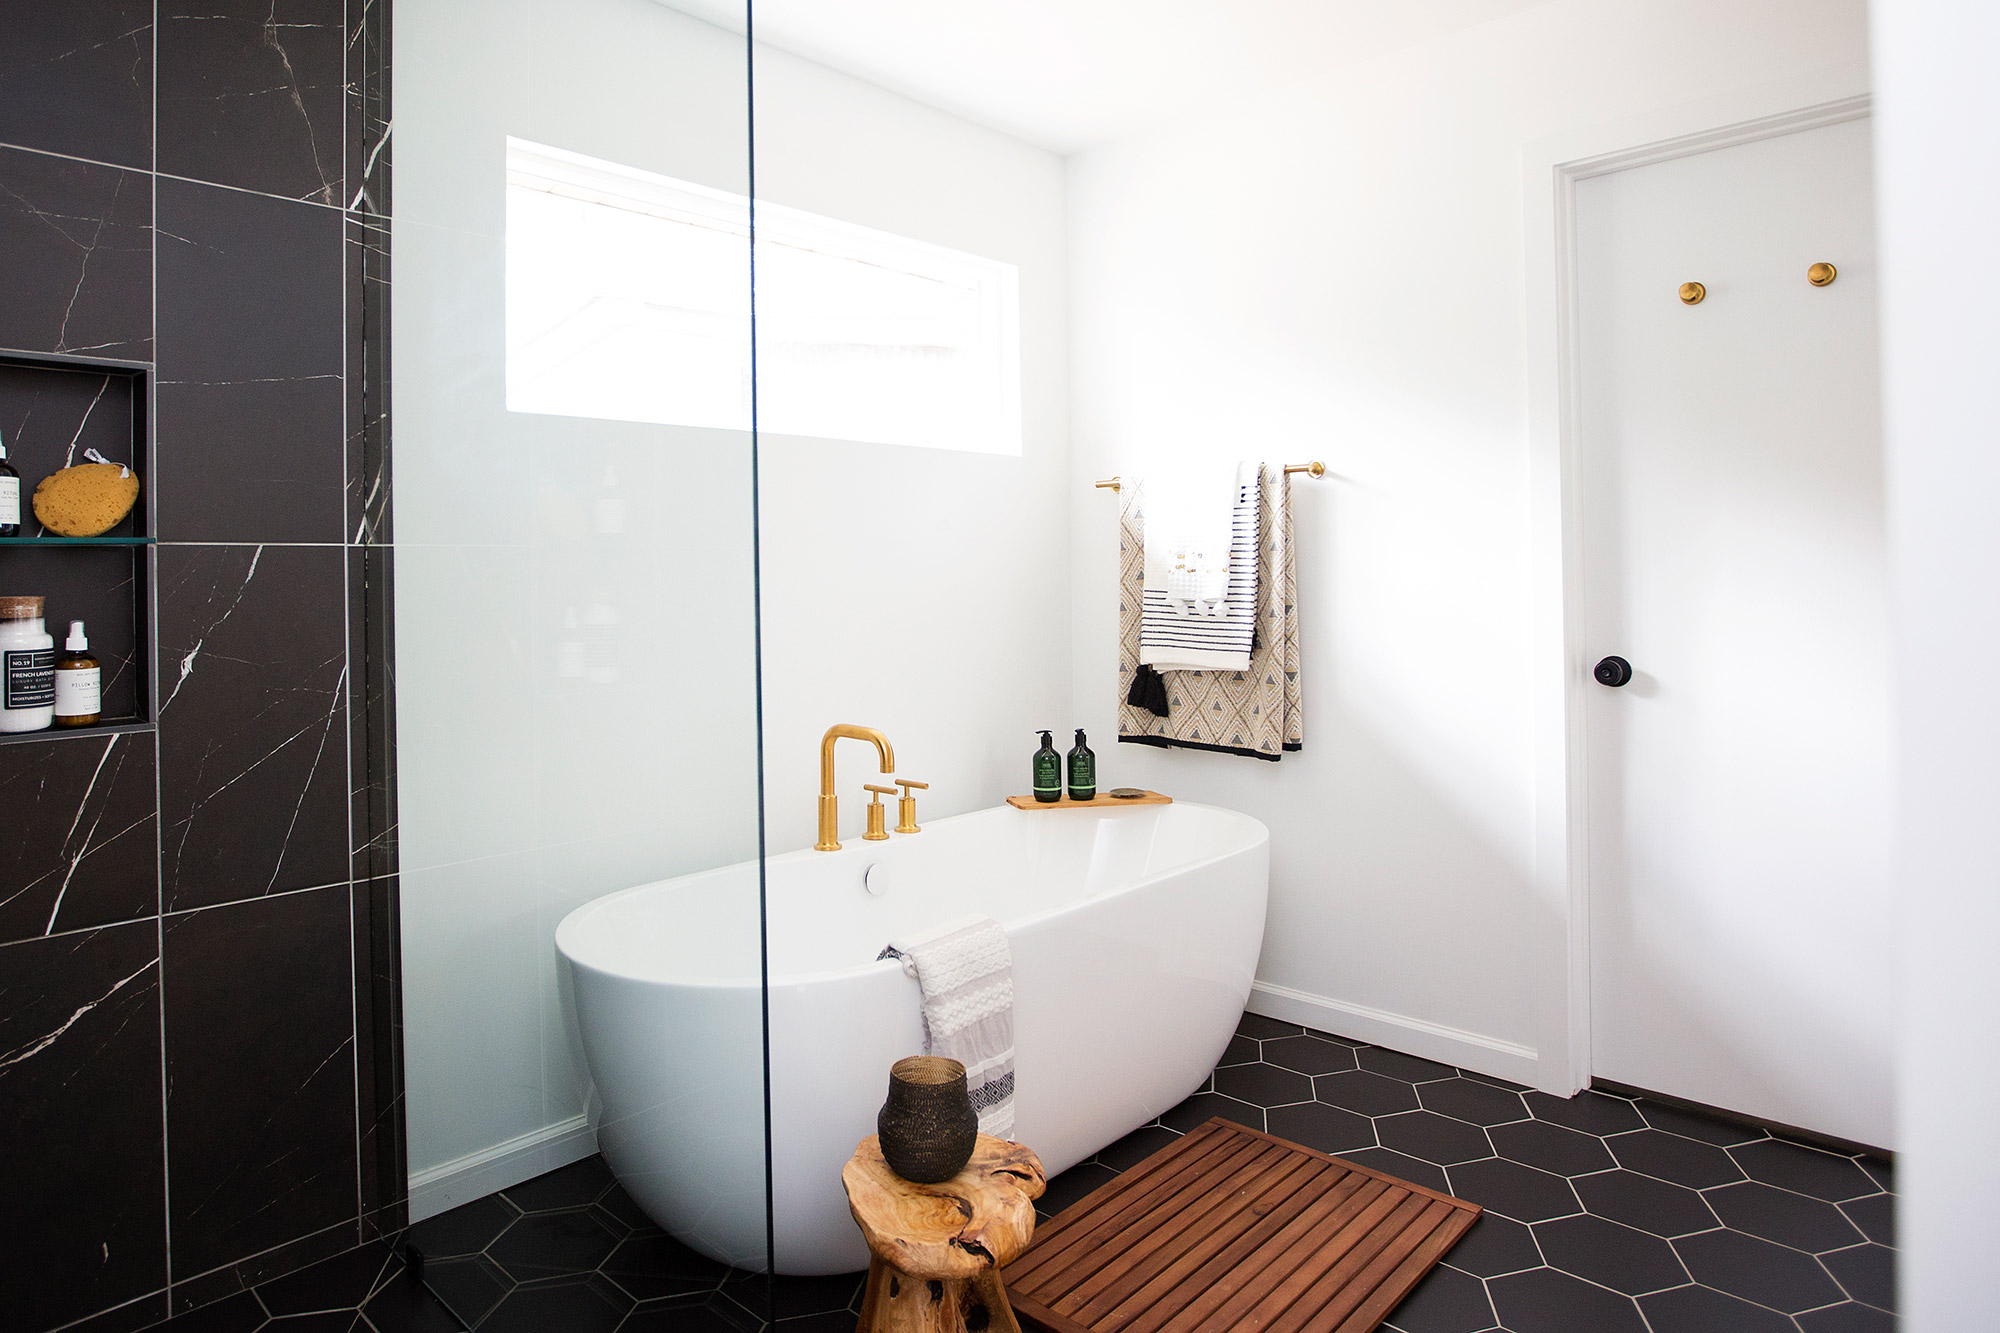 Midcentury modern master bathroom with freestanding tub and walk-in shower